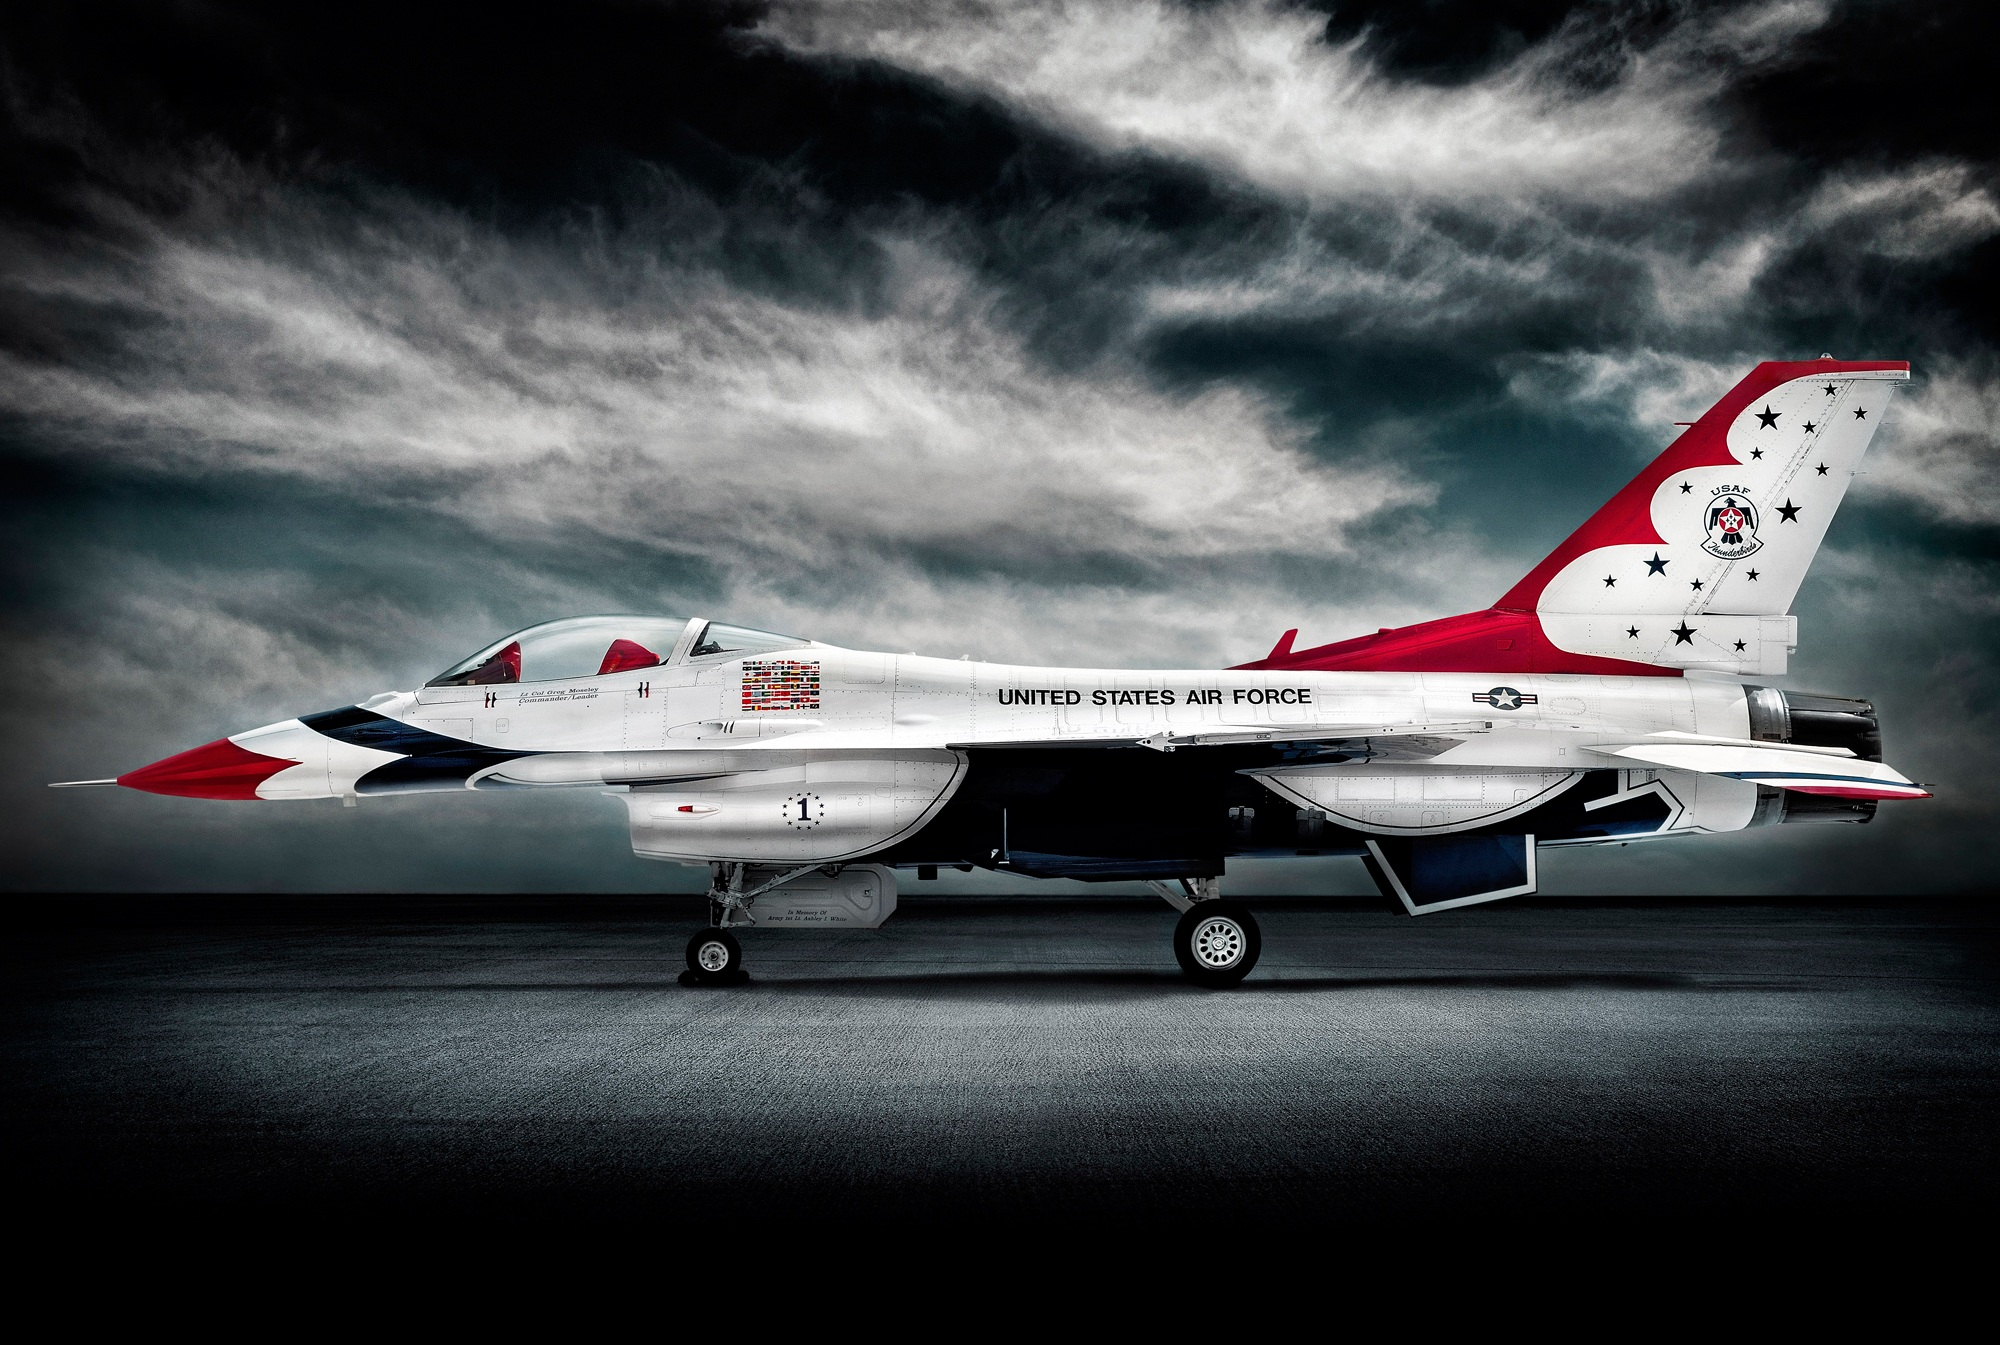 F16 Fighter Jet automotive photographer